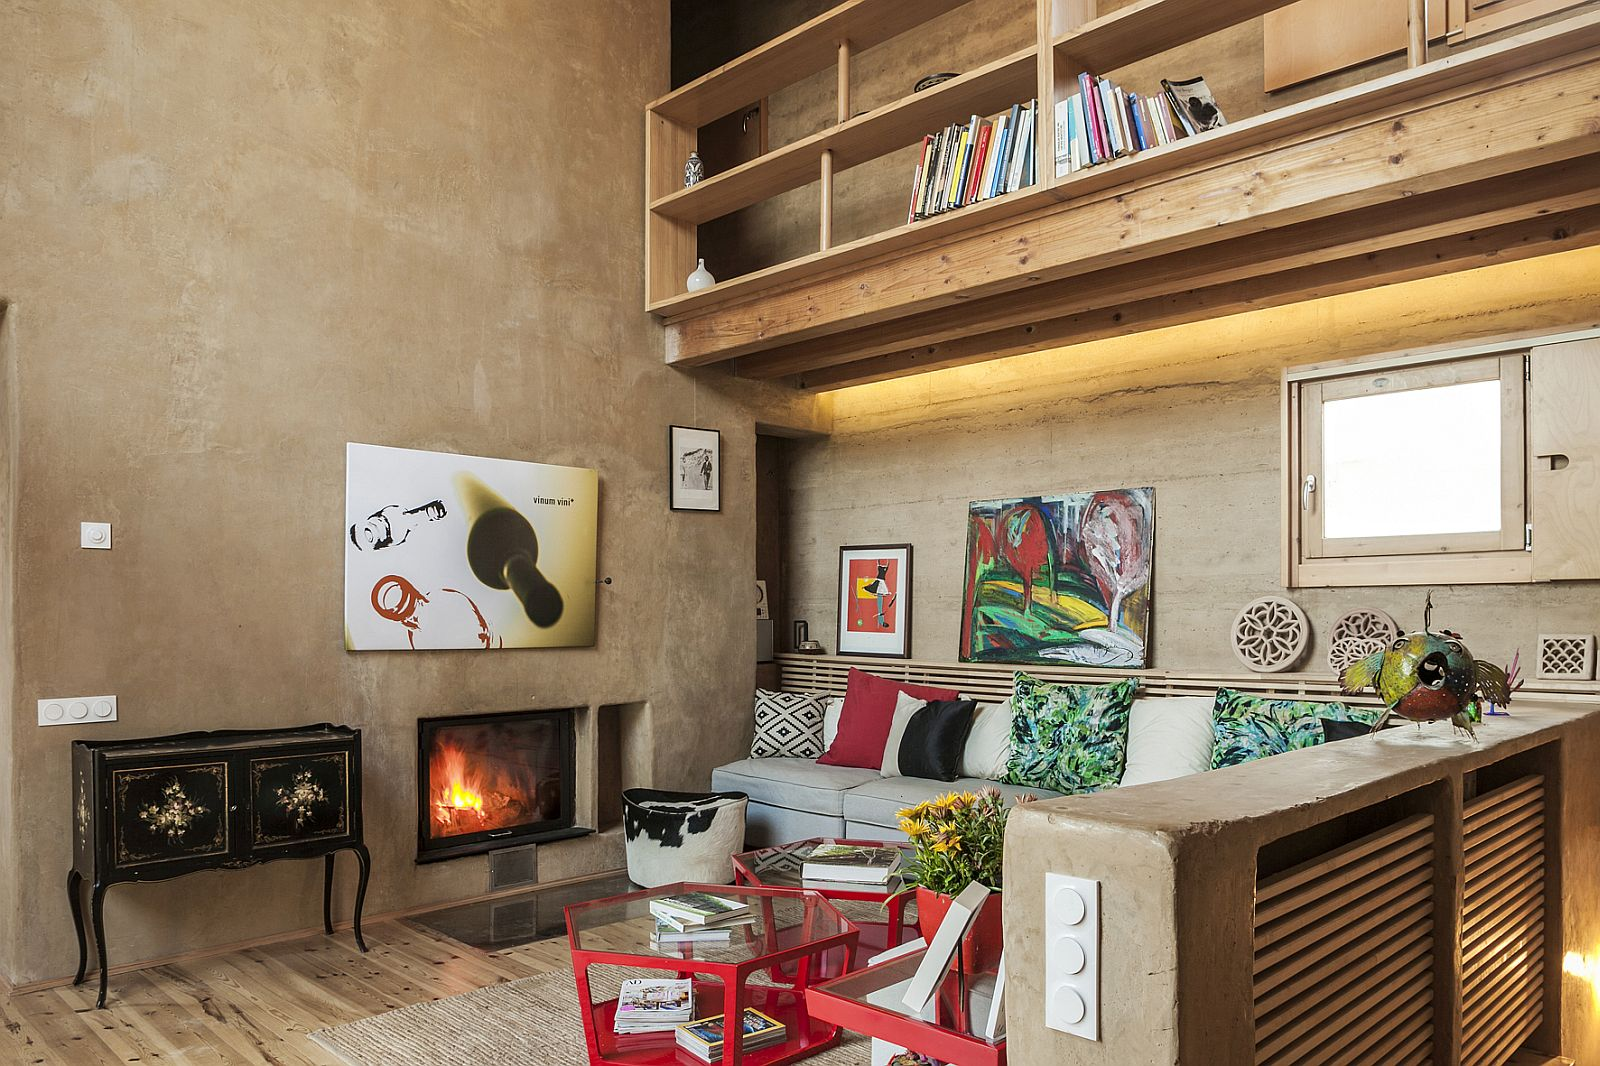 Living room with textured, plastered walls and wooden shelving